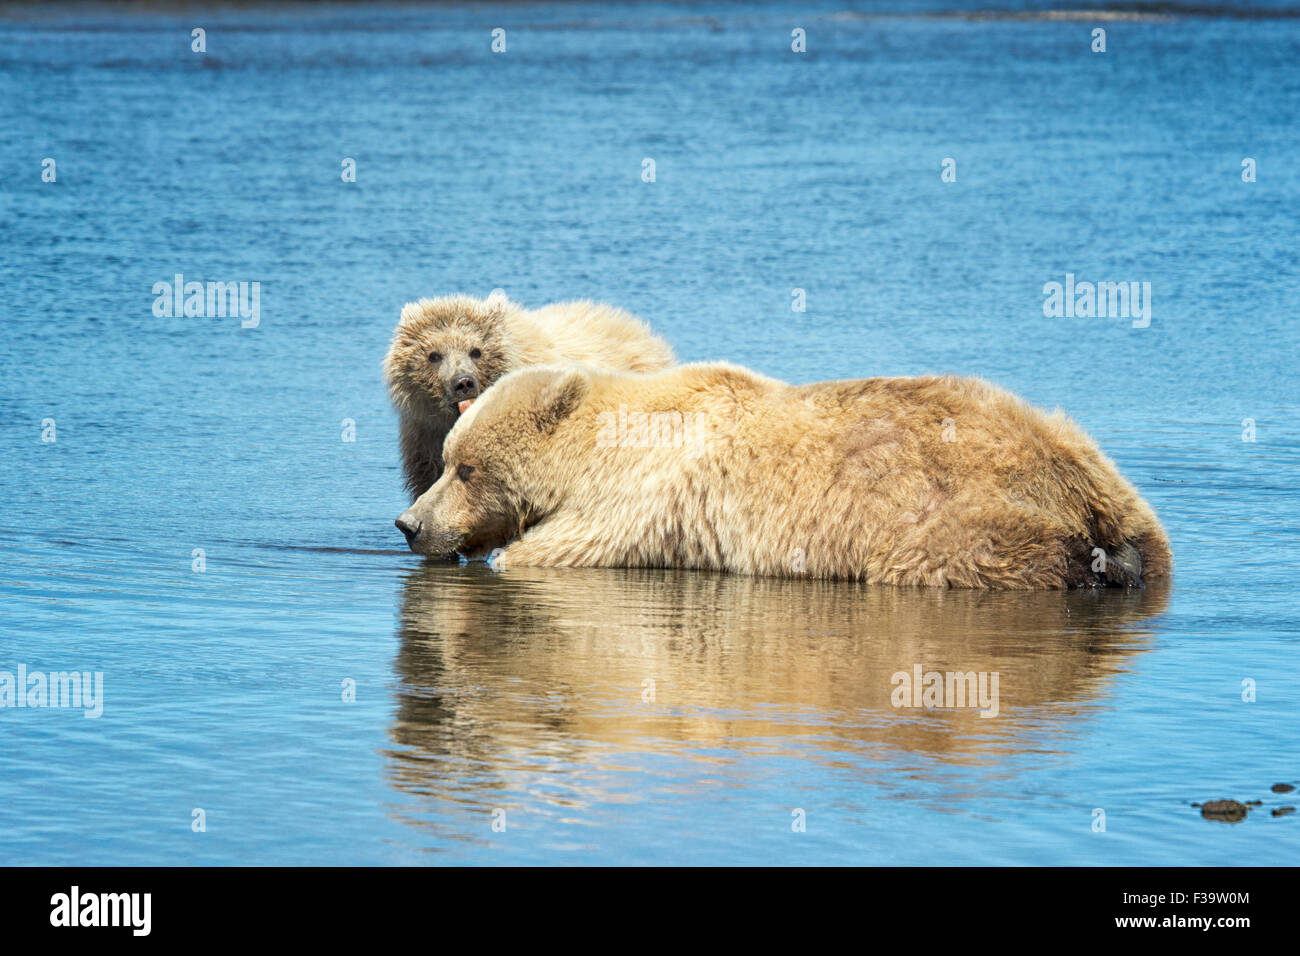 Grizzly Bear Cub Printemps mignon, Ursus arctos, léchant sa mère, Lake Clark National Park, Alaska, USA Photo Stock